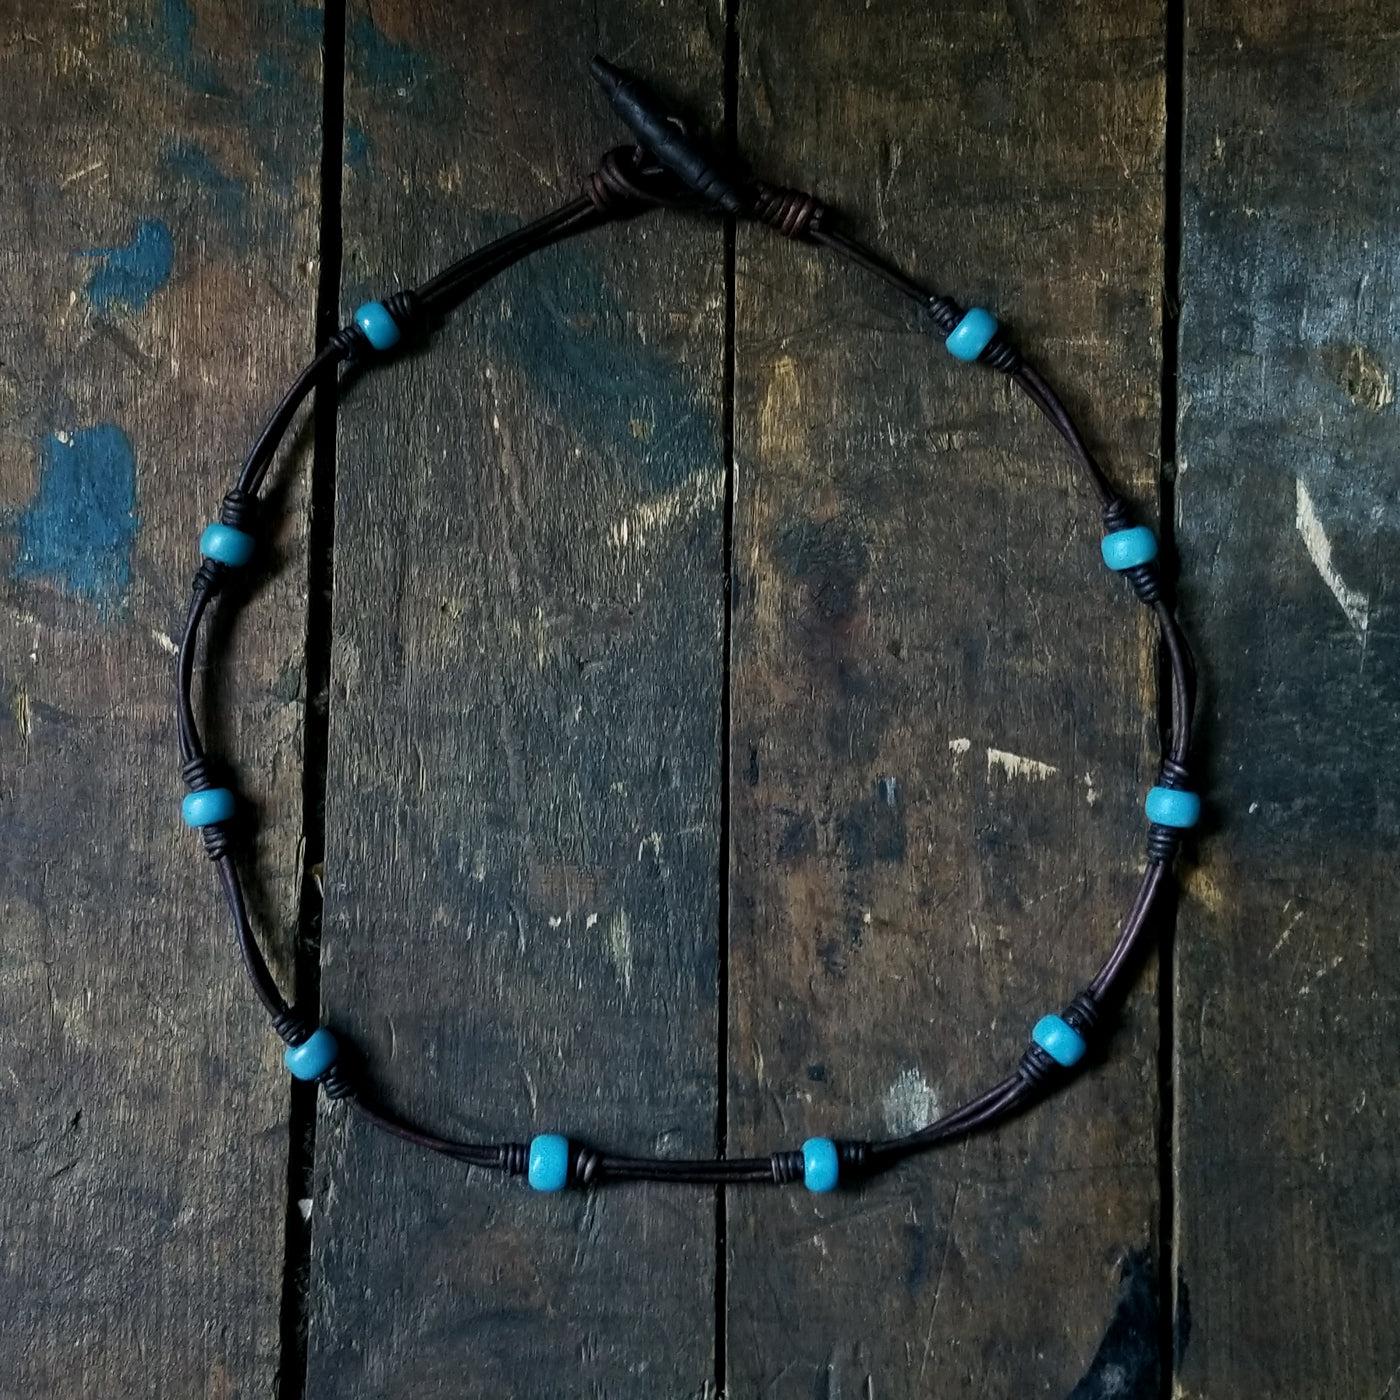 Chuma African Trace Bead Leather Knot Necklace with Leather Toggle Button & Loop Clasp, Blue Green Beads